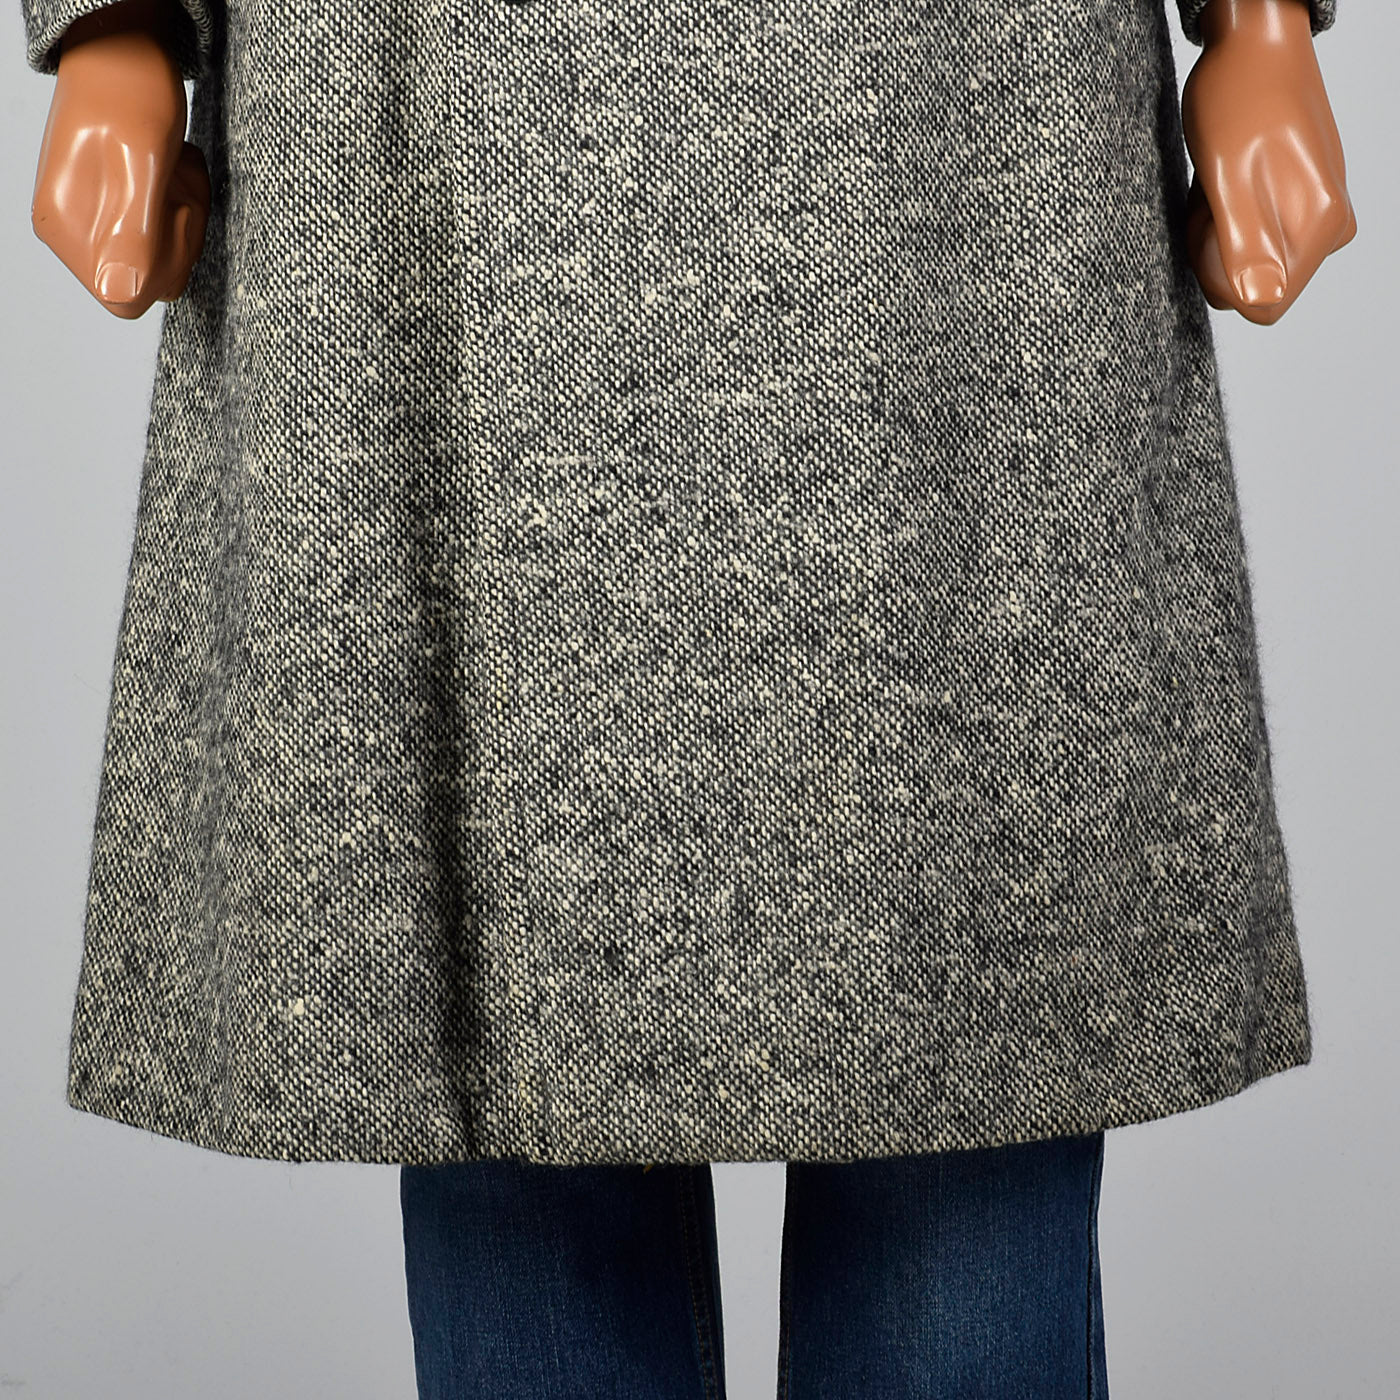 1970s Mens Wool Tweed Coat with Raccoon Fur Collar